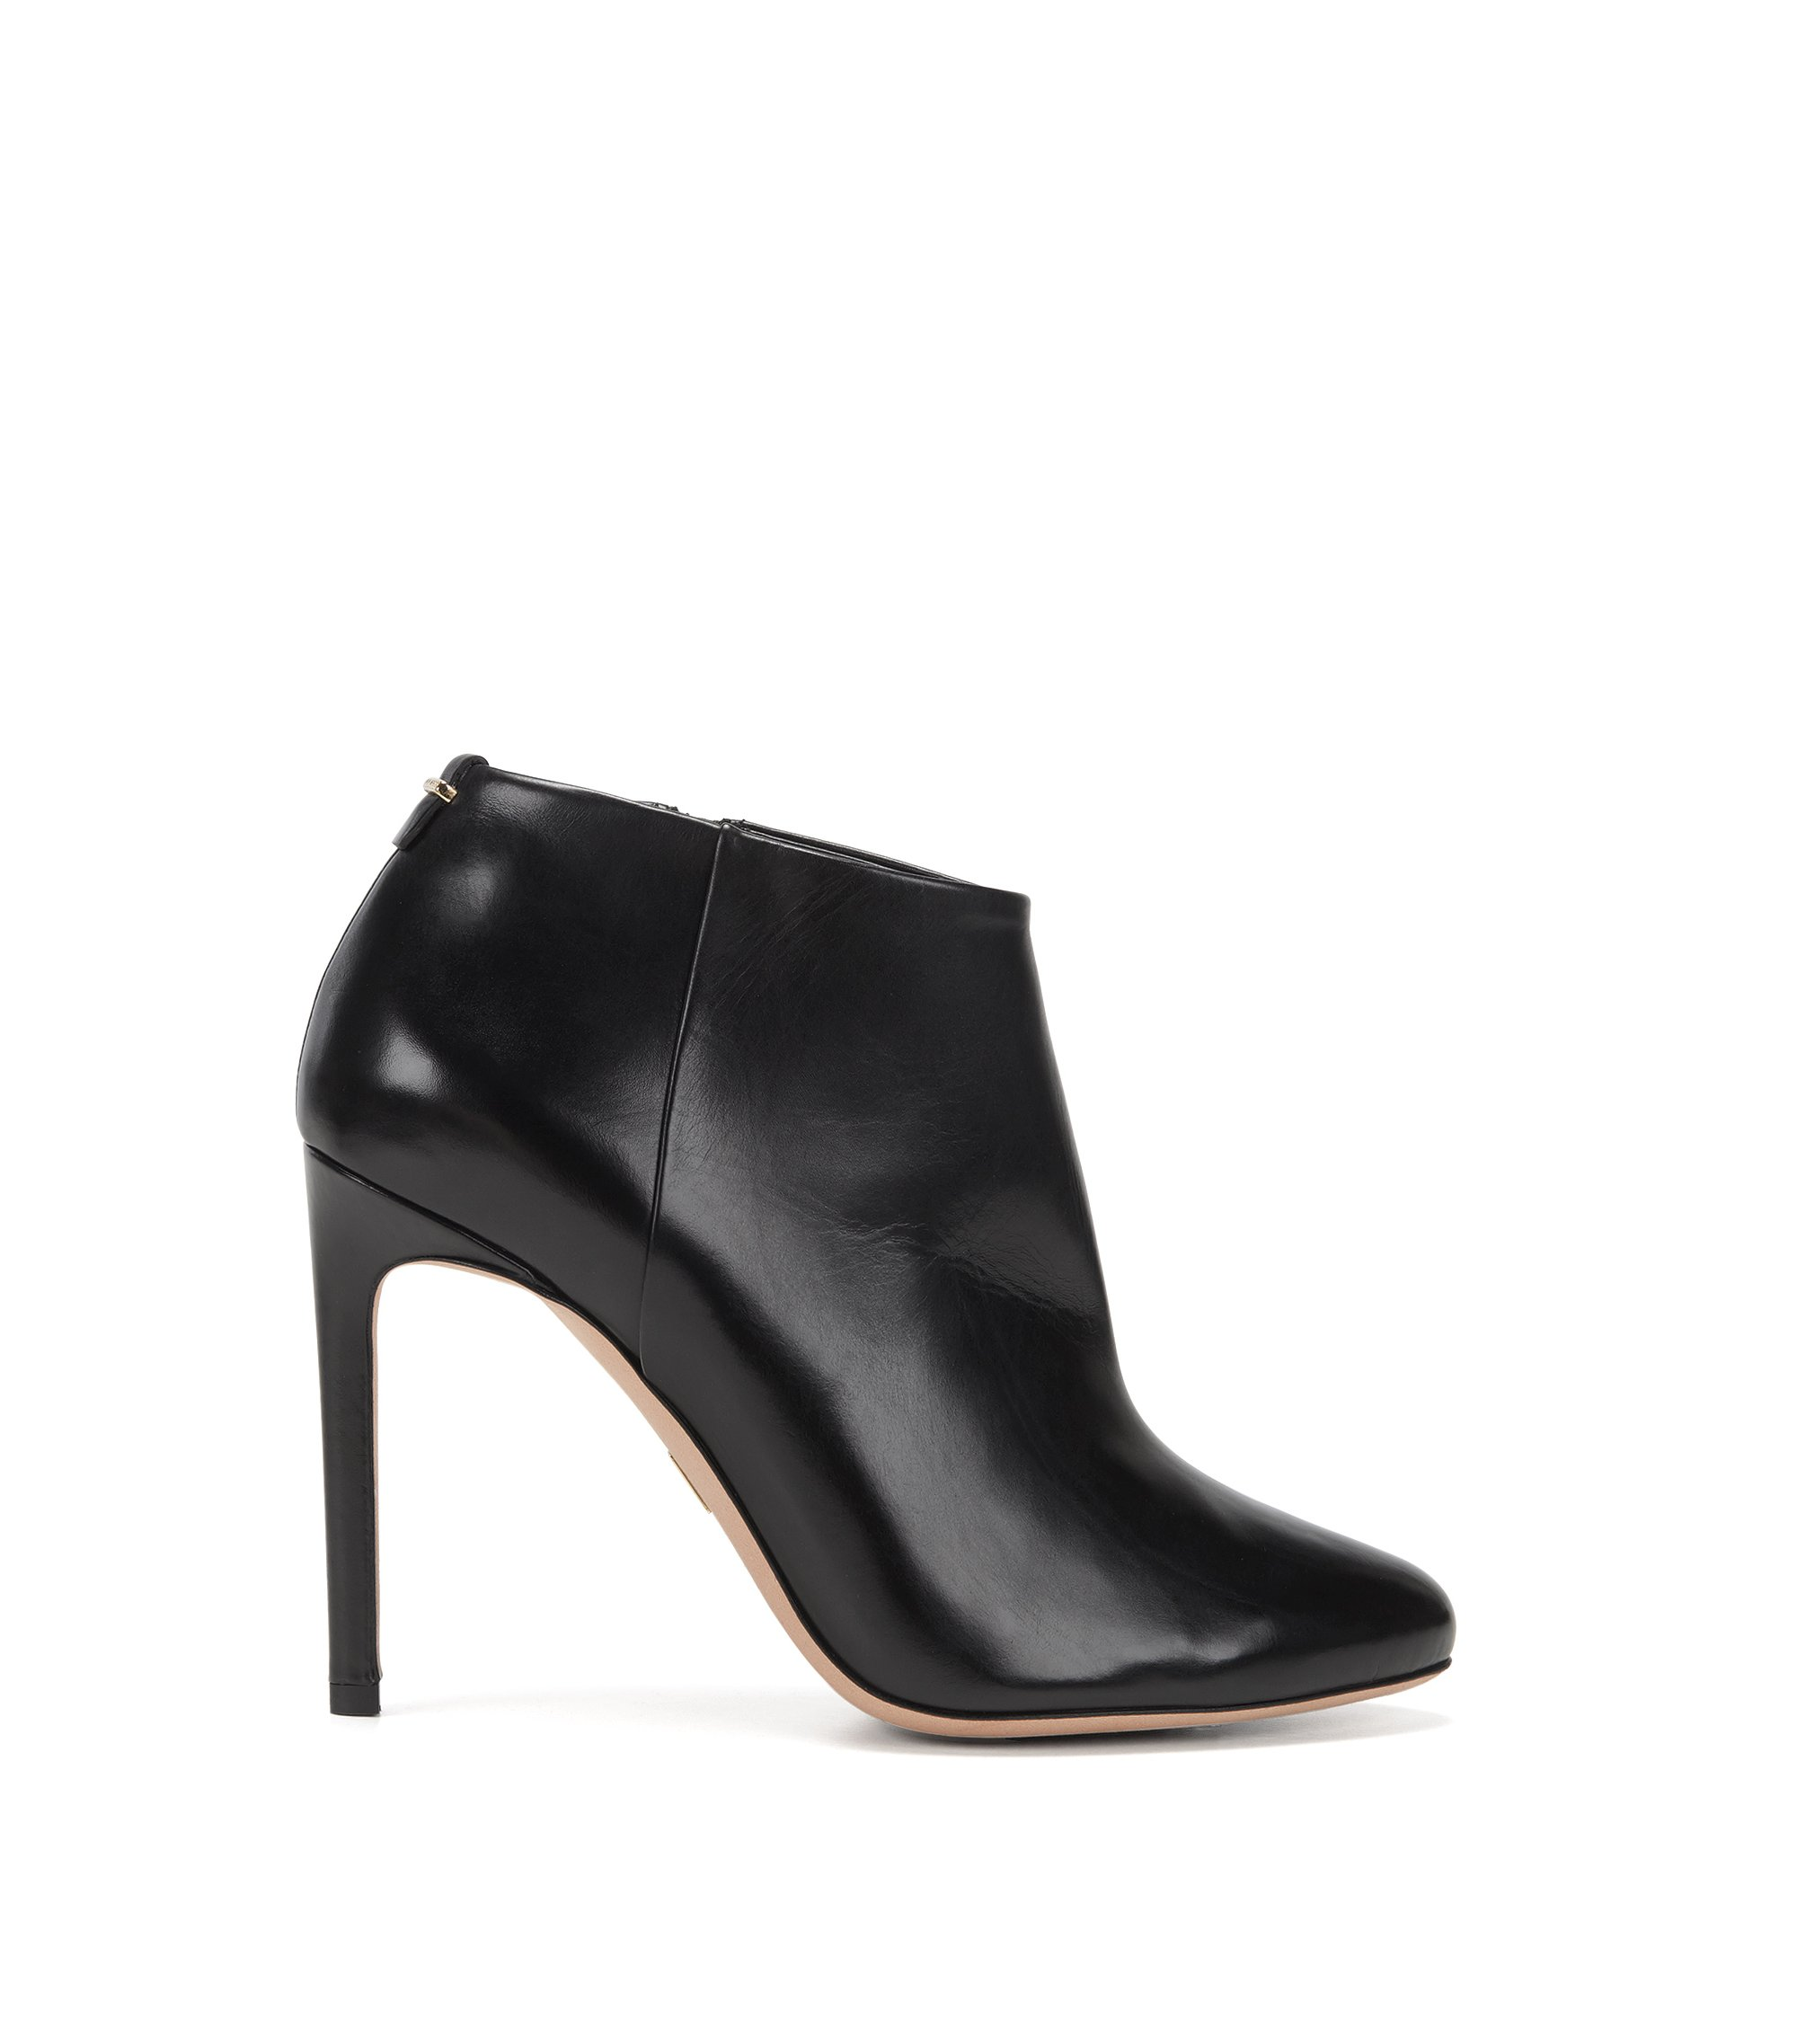 Bottines BOSS Luxury Staple en cuir italien, Noir